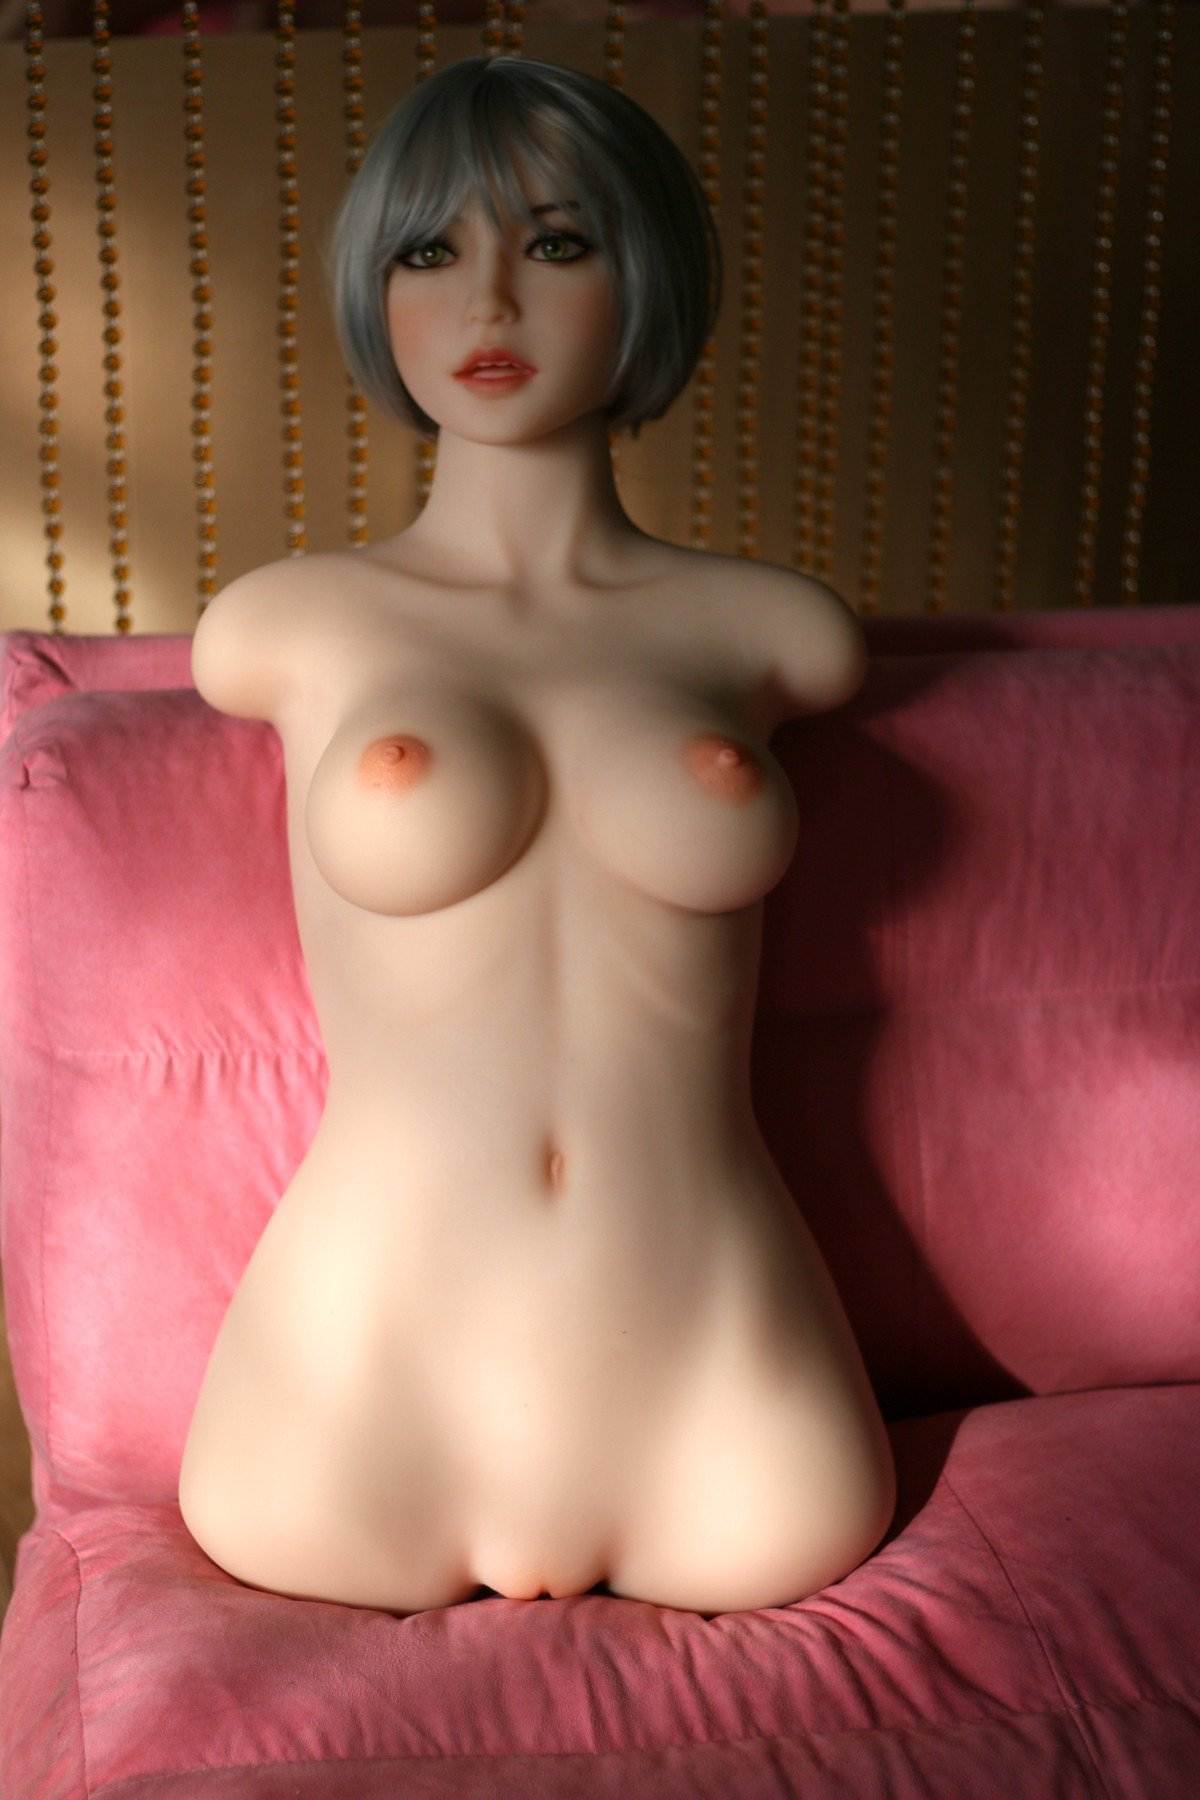 realistic sex doll torso